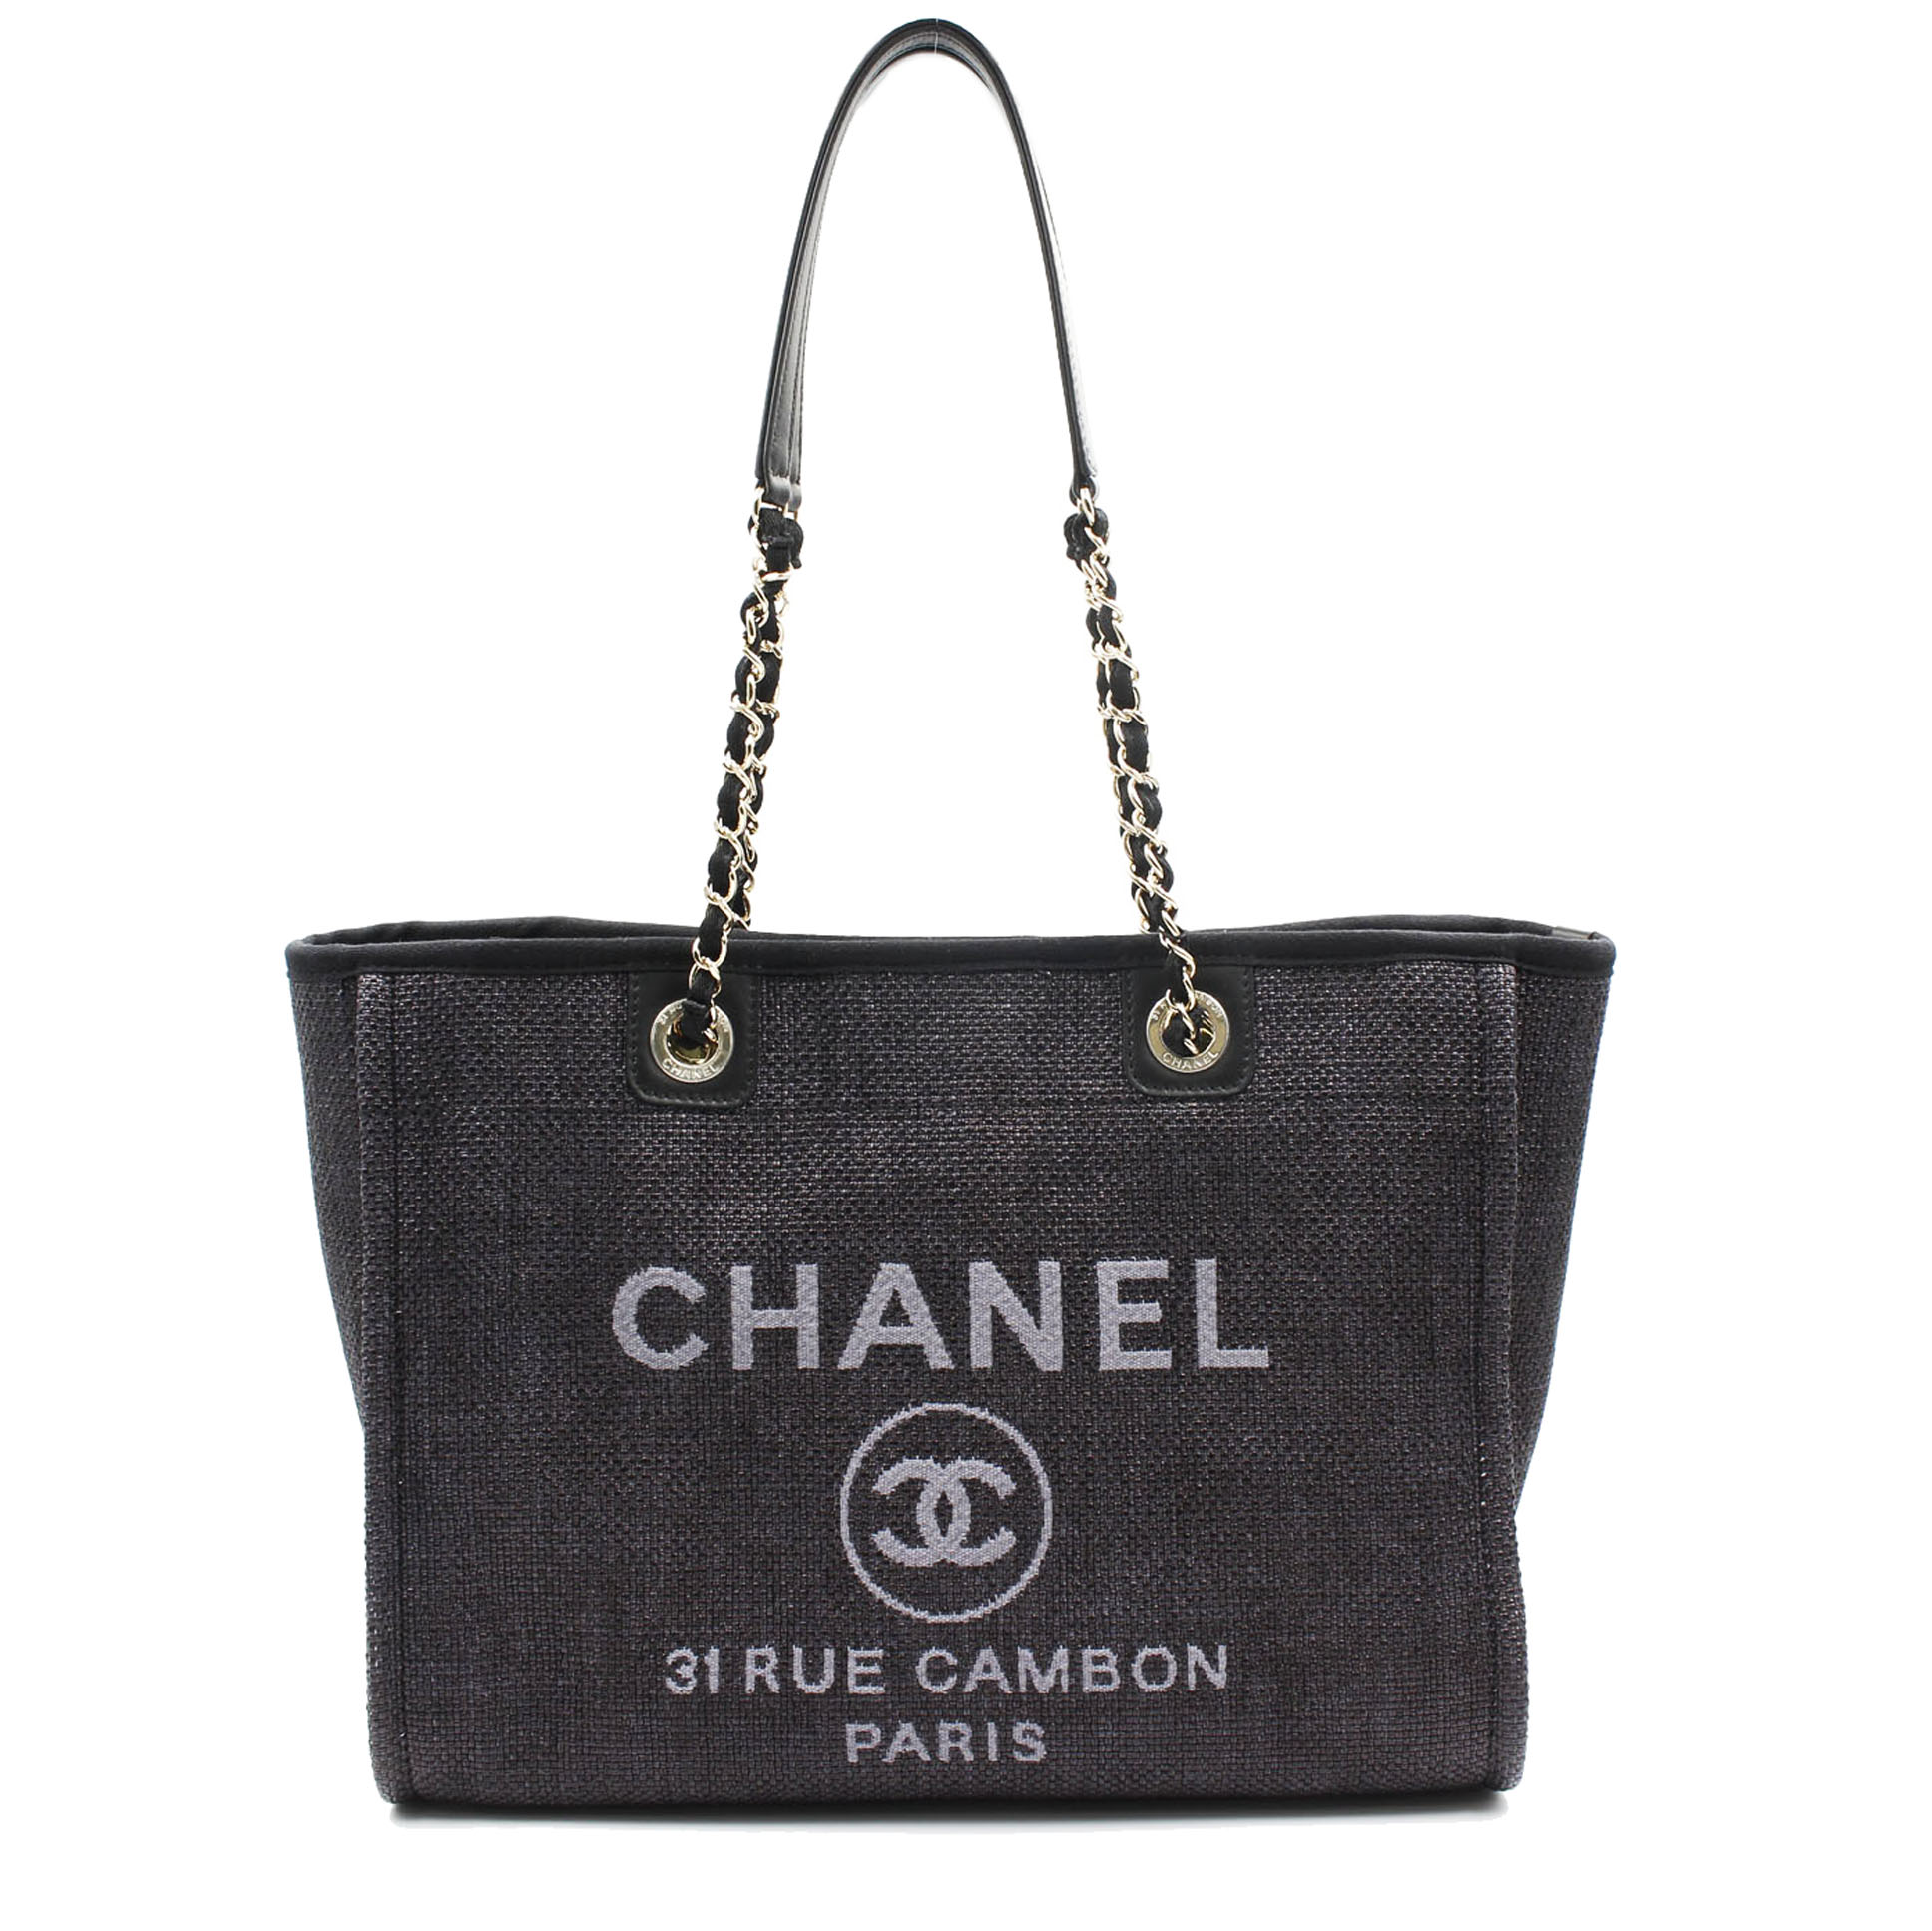 Chanel Deauville MM 35cm Denim Chain Shoulder Black Canvas Tote Bag A67001 9bea6ae42d